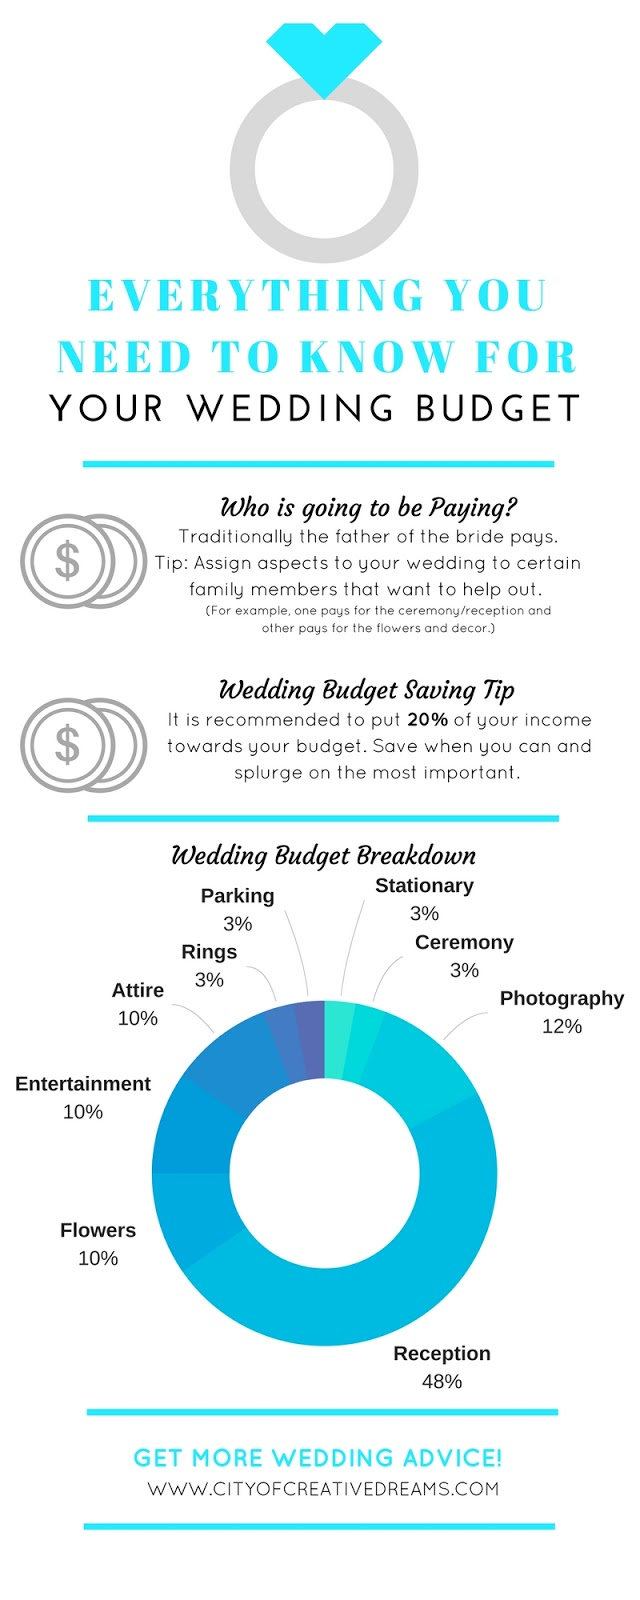 Everything you need to Know for your Wedding Budget | City of Creative Dreams